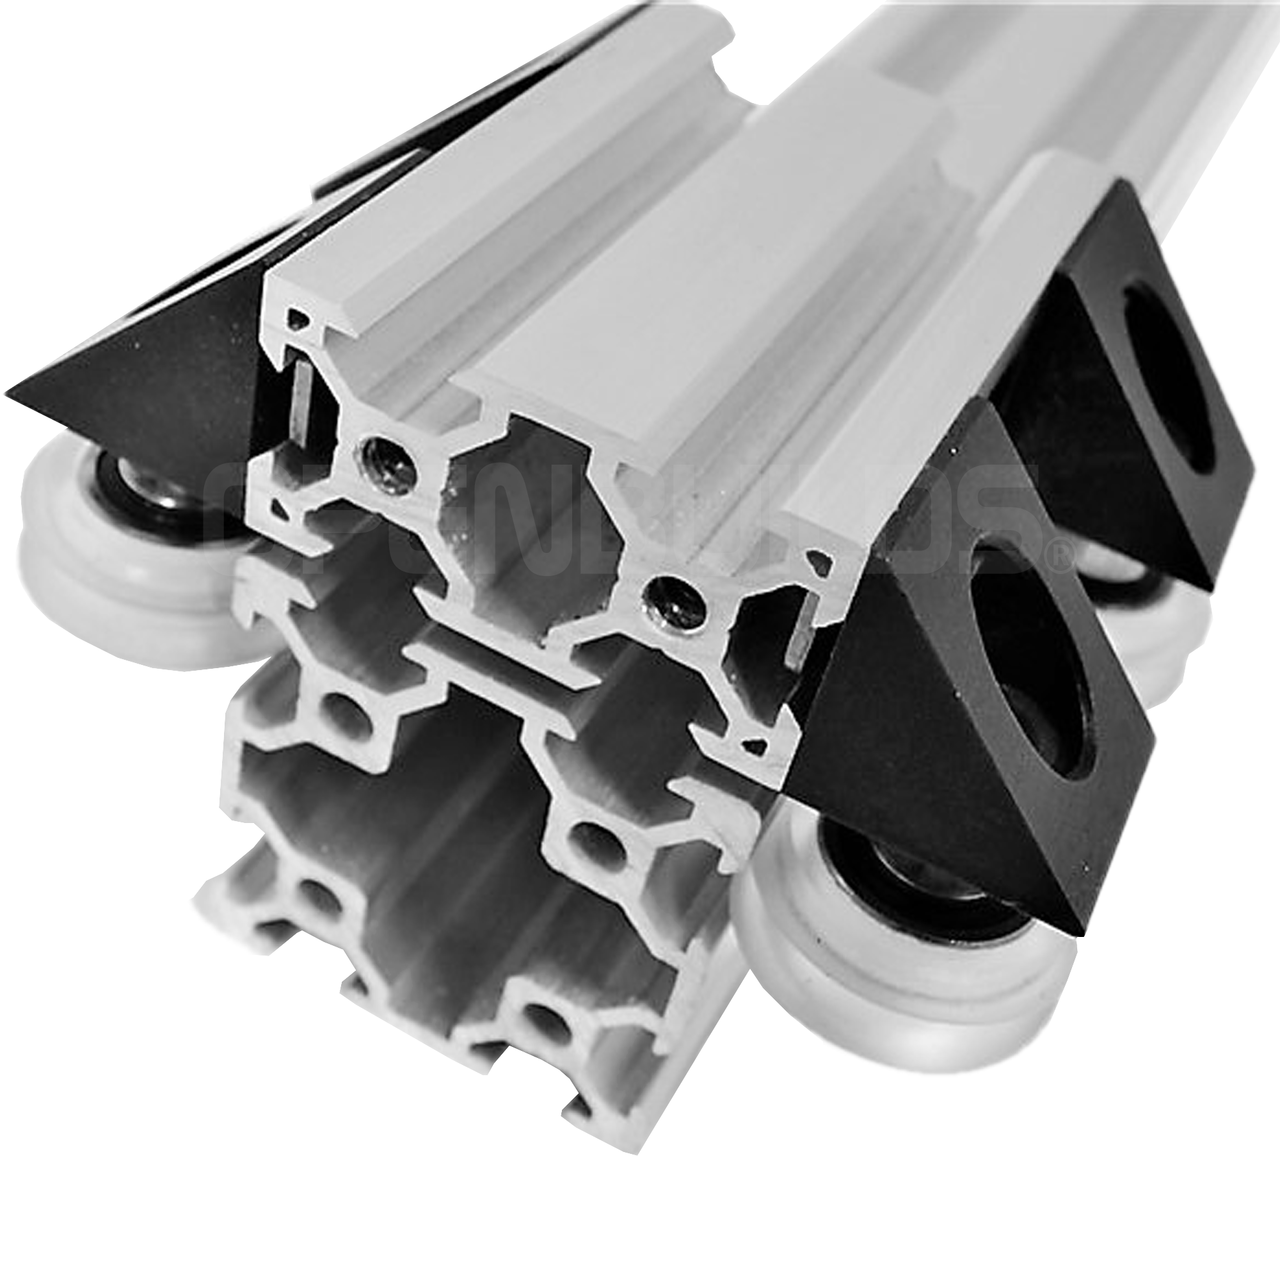 V Slot 40x40 Linear Rail Aluminum Extrusion On Sale Now